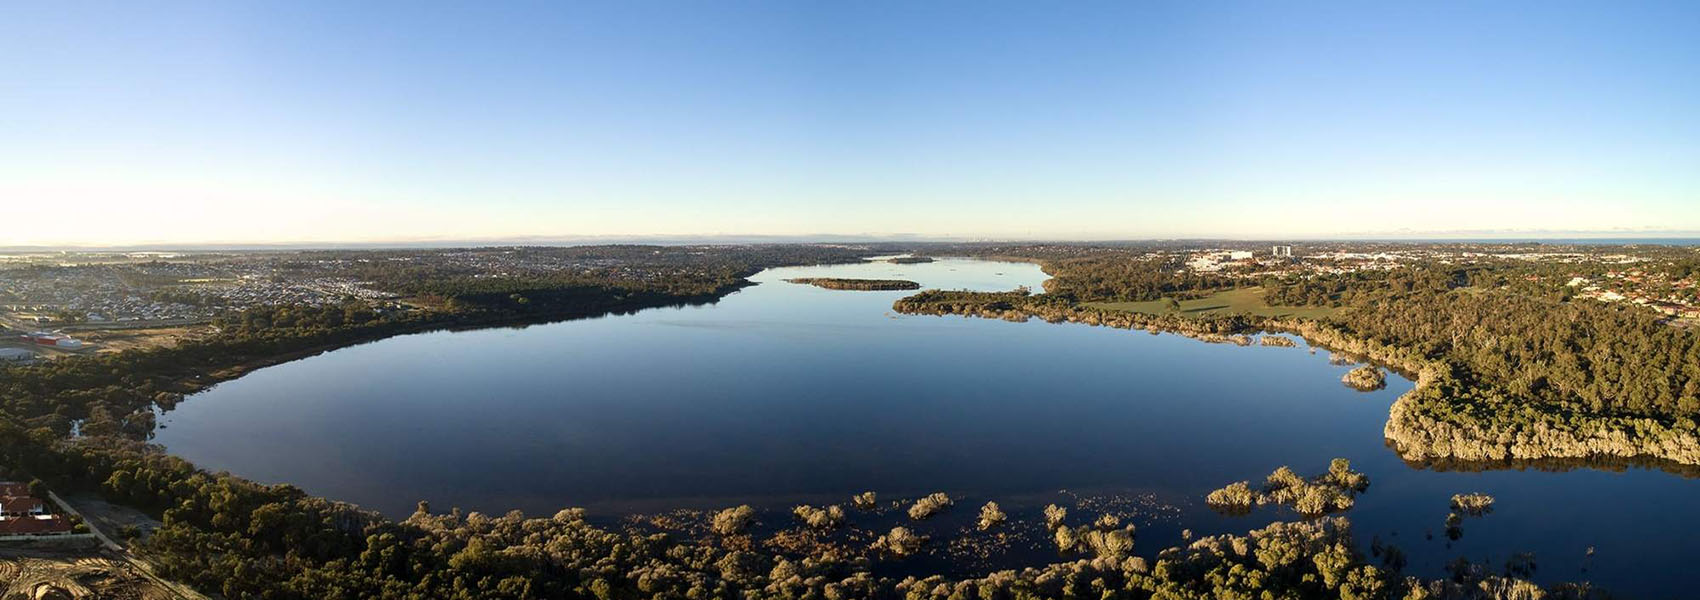 Aerial photo of lake next to Myella Estate in Wanneroo